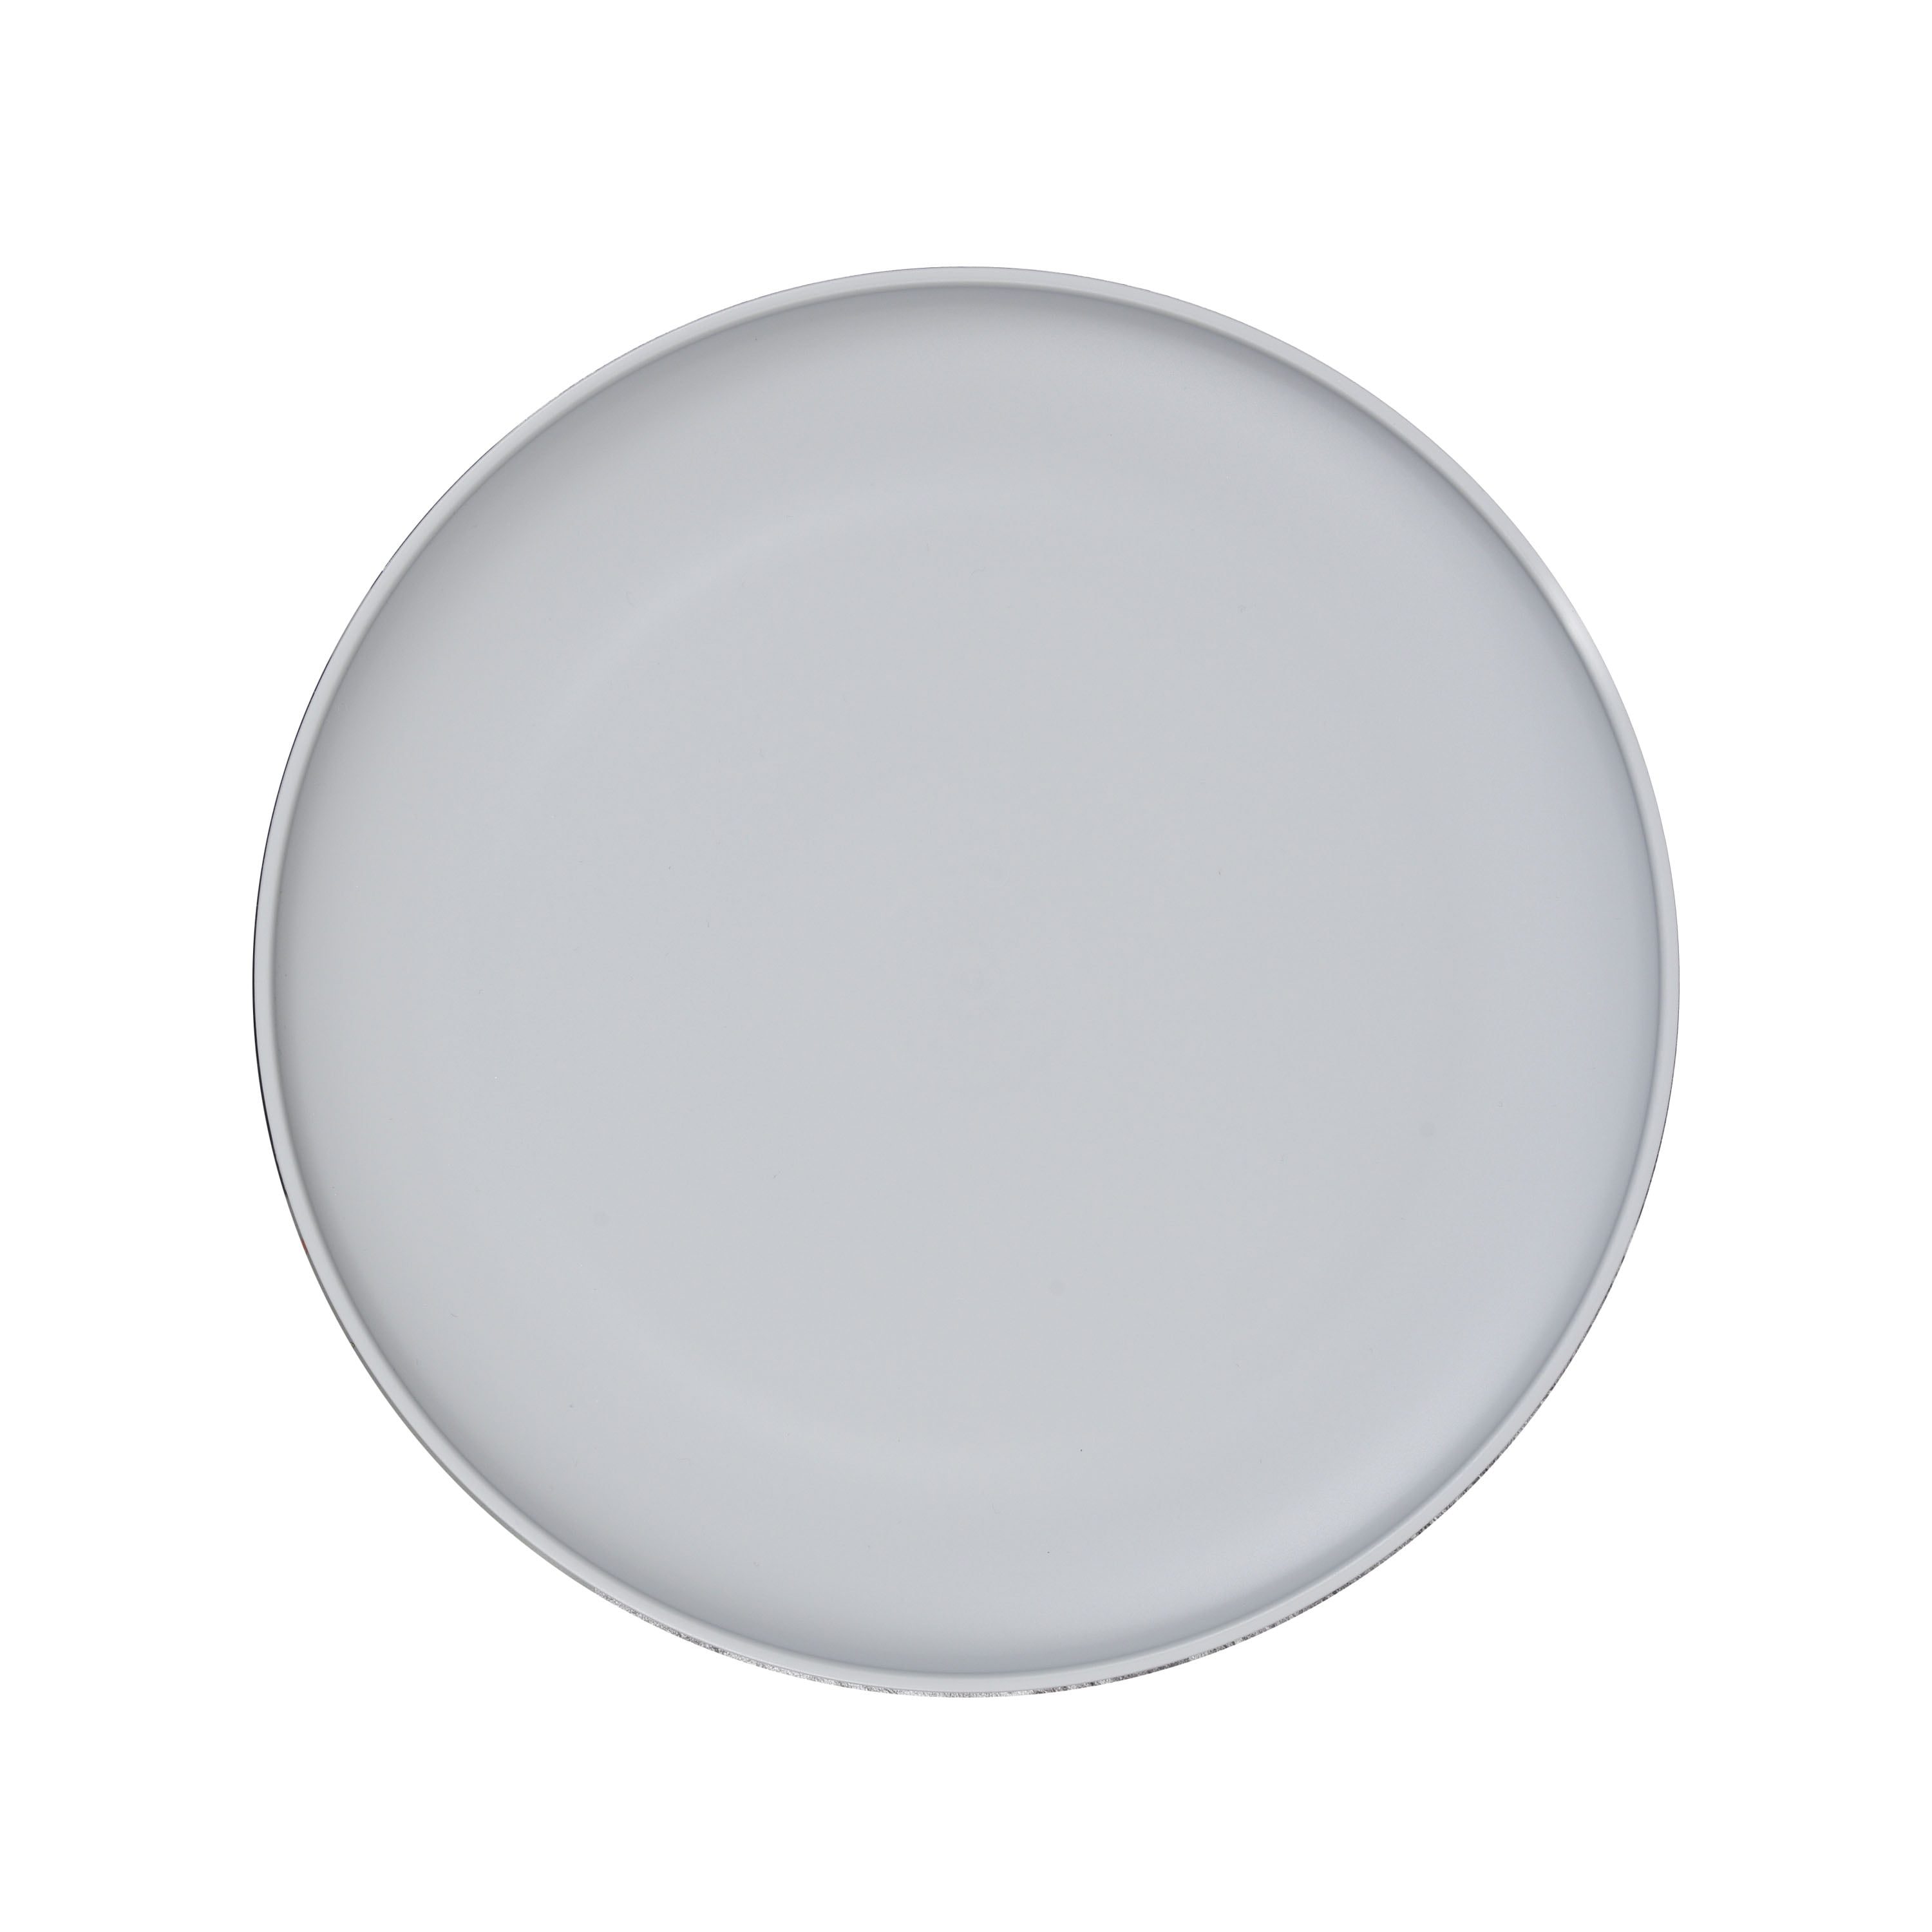 Mainstays Gray 10.5-Inch Plastic Plate